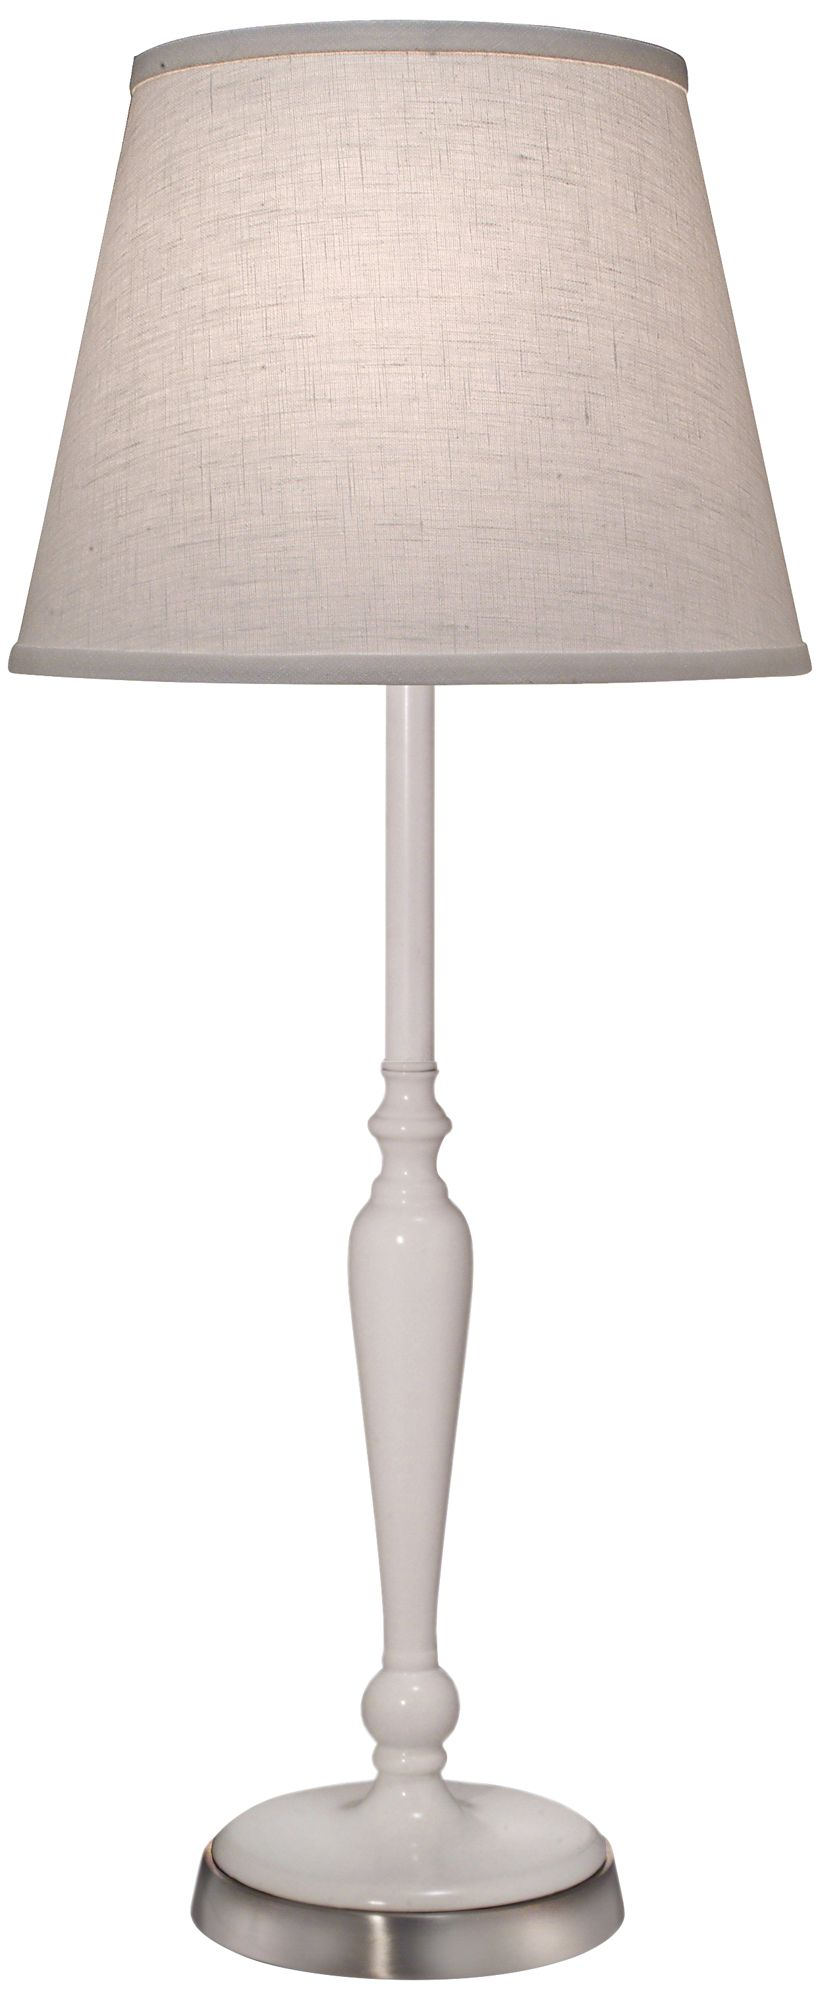 Stiffel Glossy White Metal Buffet Table Lamp